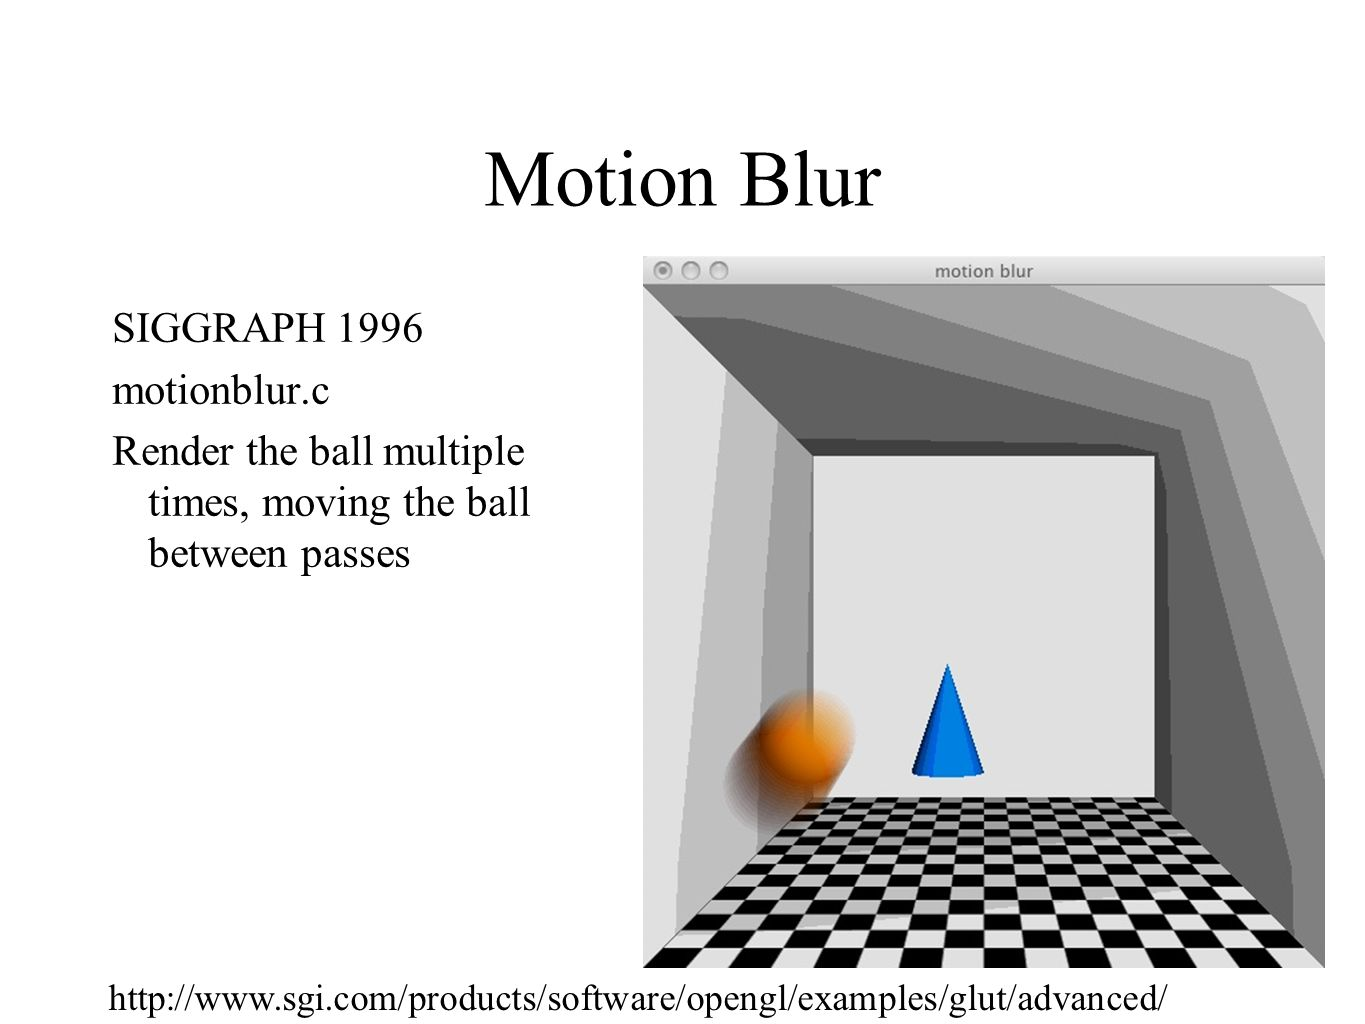 Motion Blur SIGGRAPH 1996 motionblur.c Render the ball multiple times, moving the ball between passes